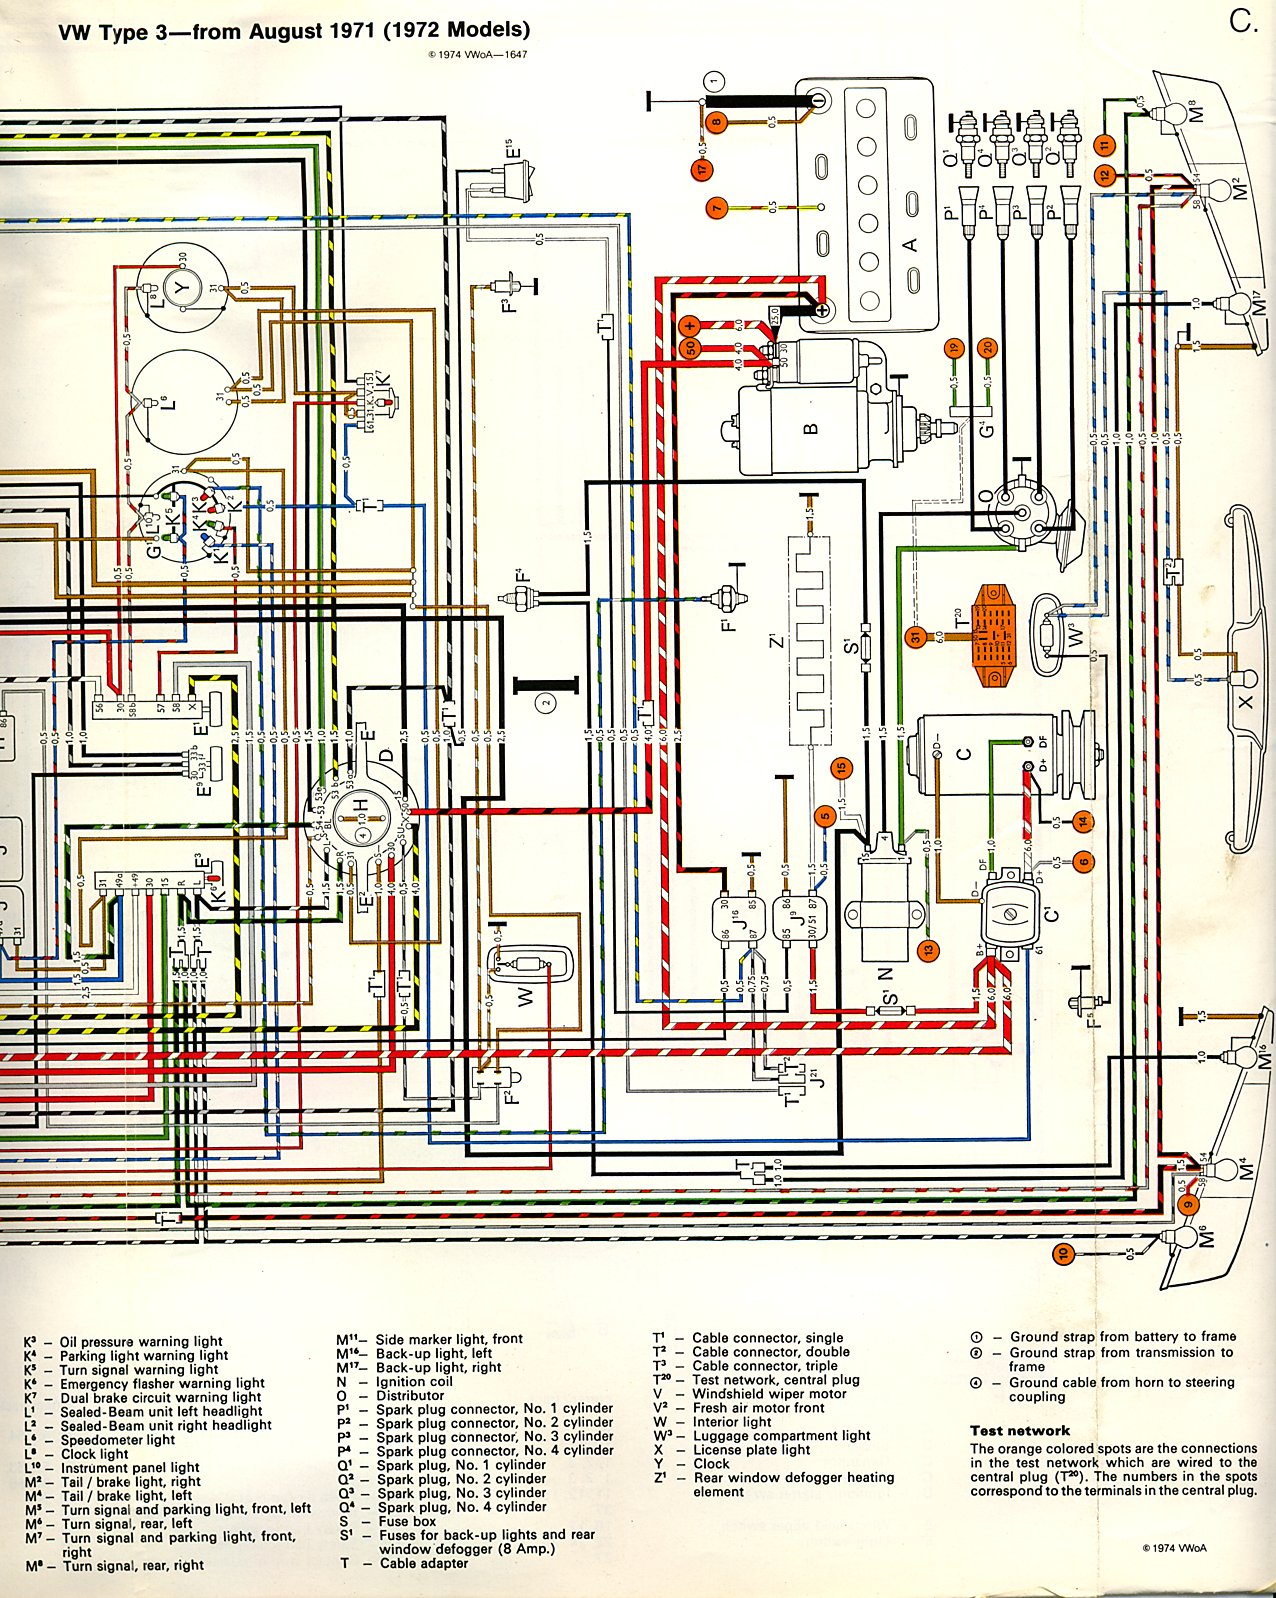 Type 3 Wiring Diagram Data Volkswagen Super Beetle Thesamba Com Diagrams Vw